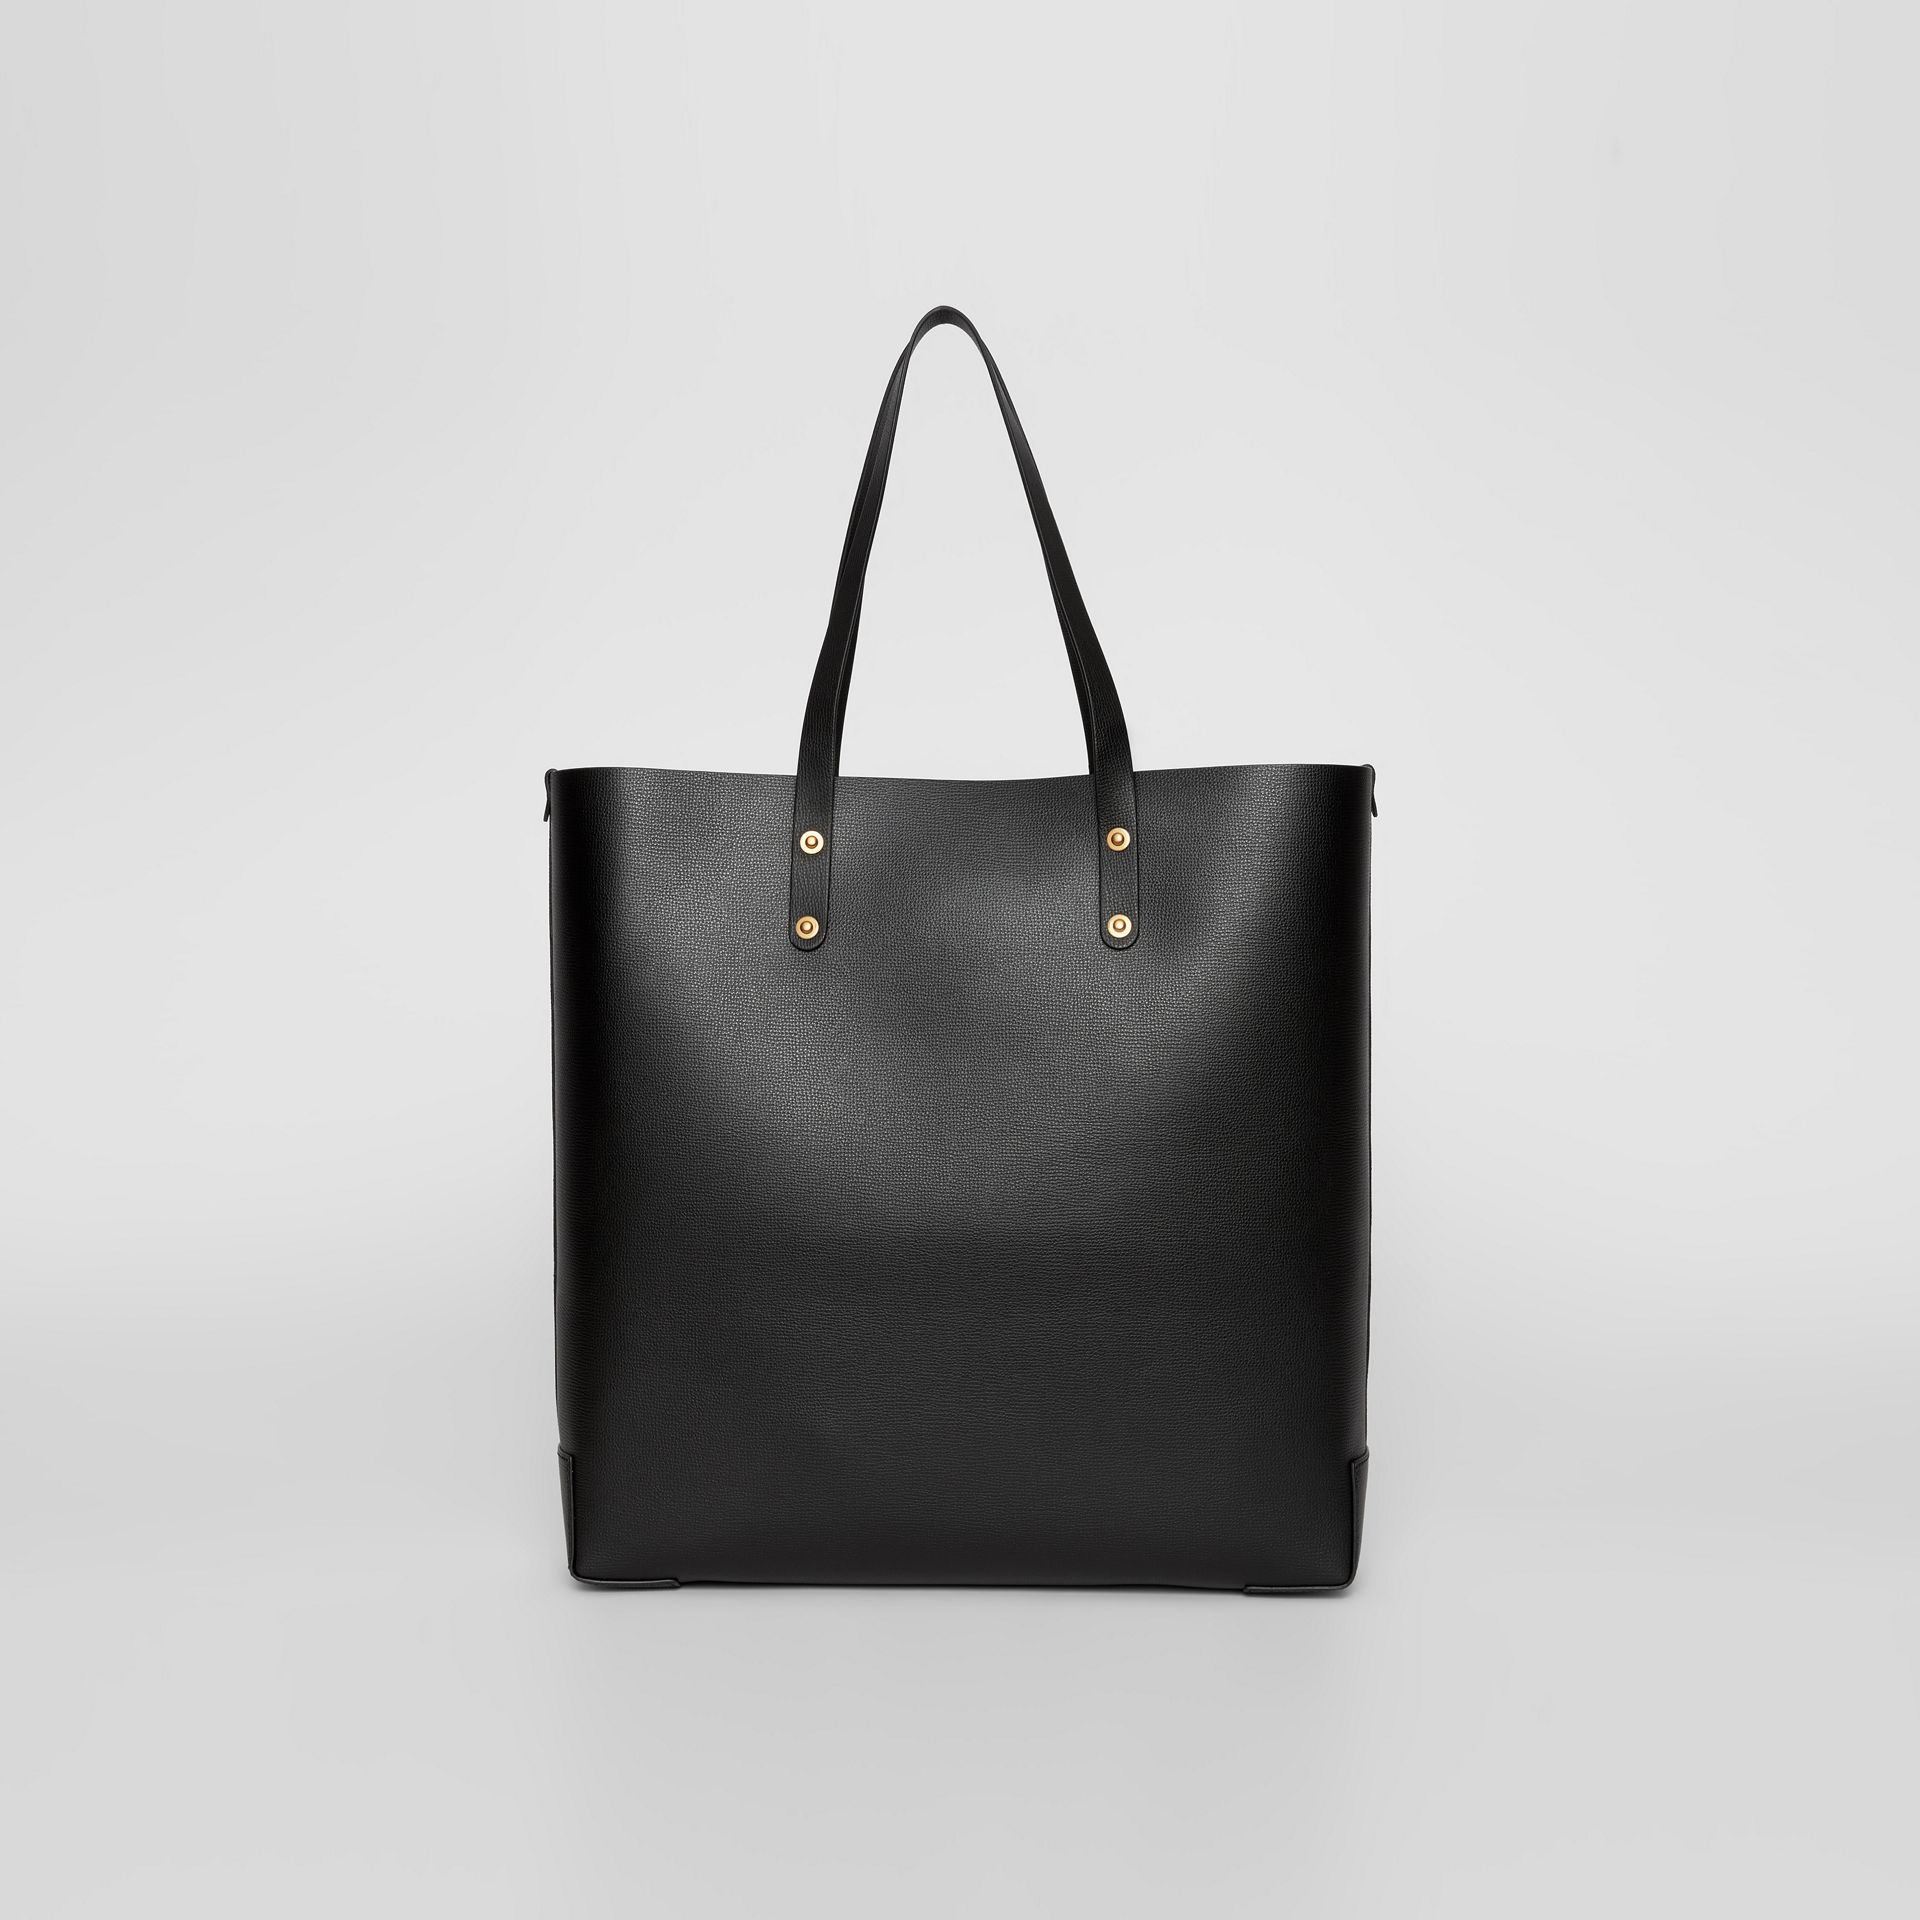 Embossed Crest Leather Tote in Black | Burberry - gallery image 5